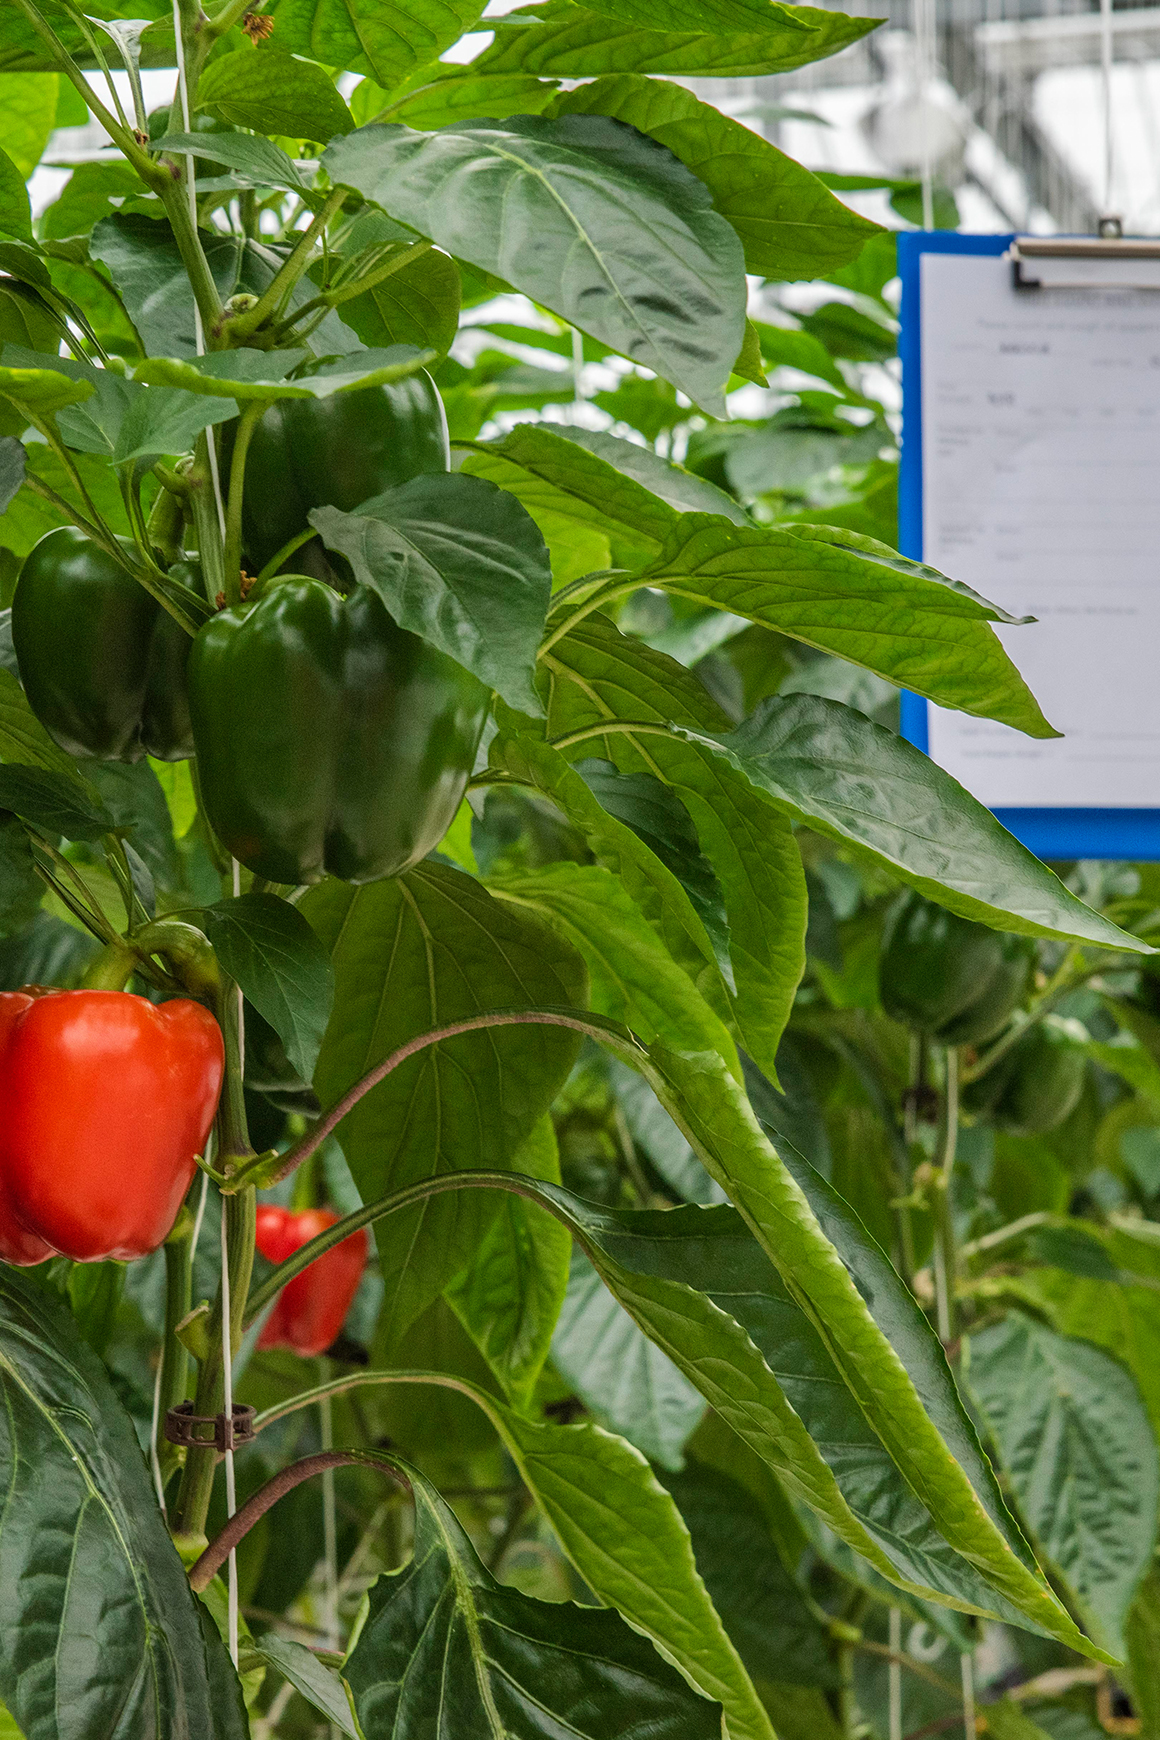 An example of new pepper trials in Tangmere Airfield Nurseries' unique research facility.